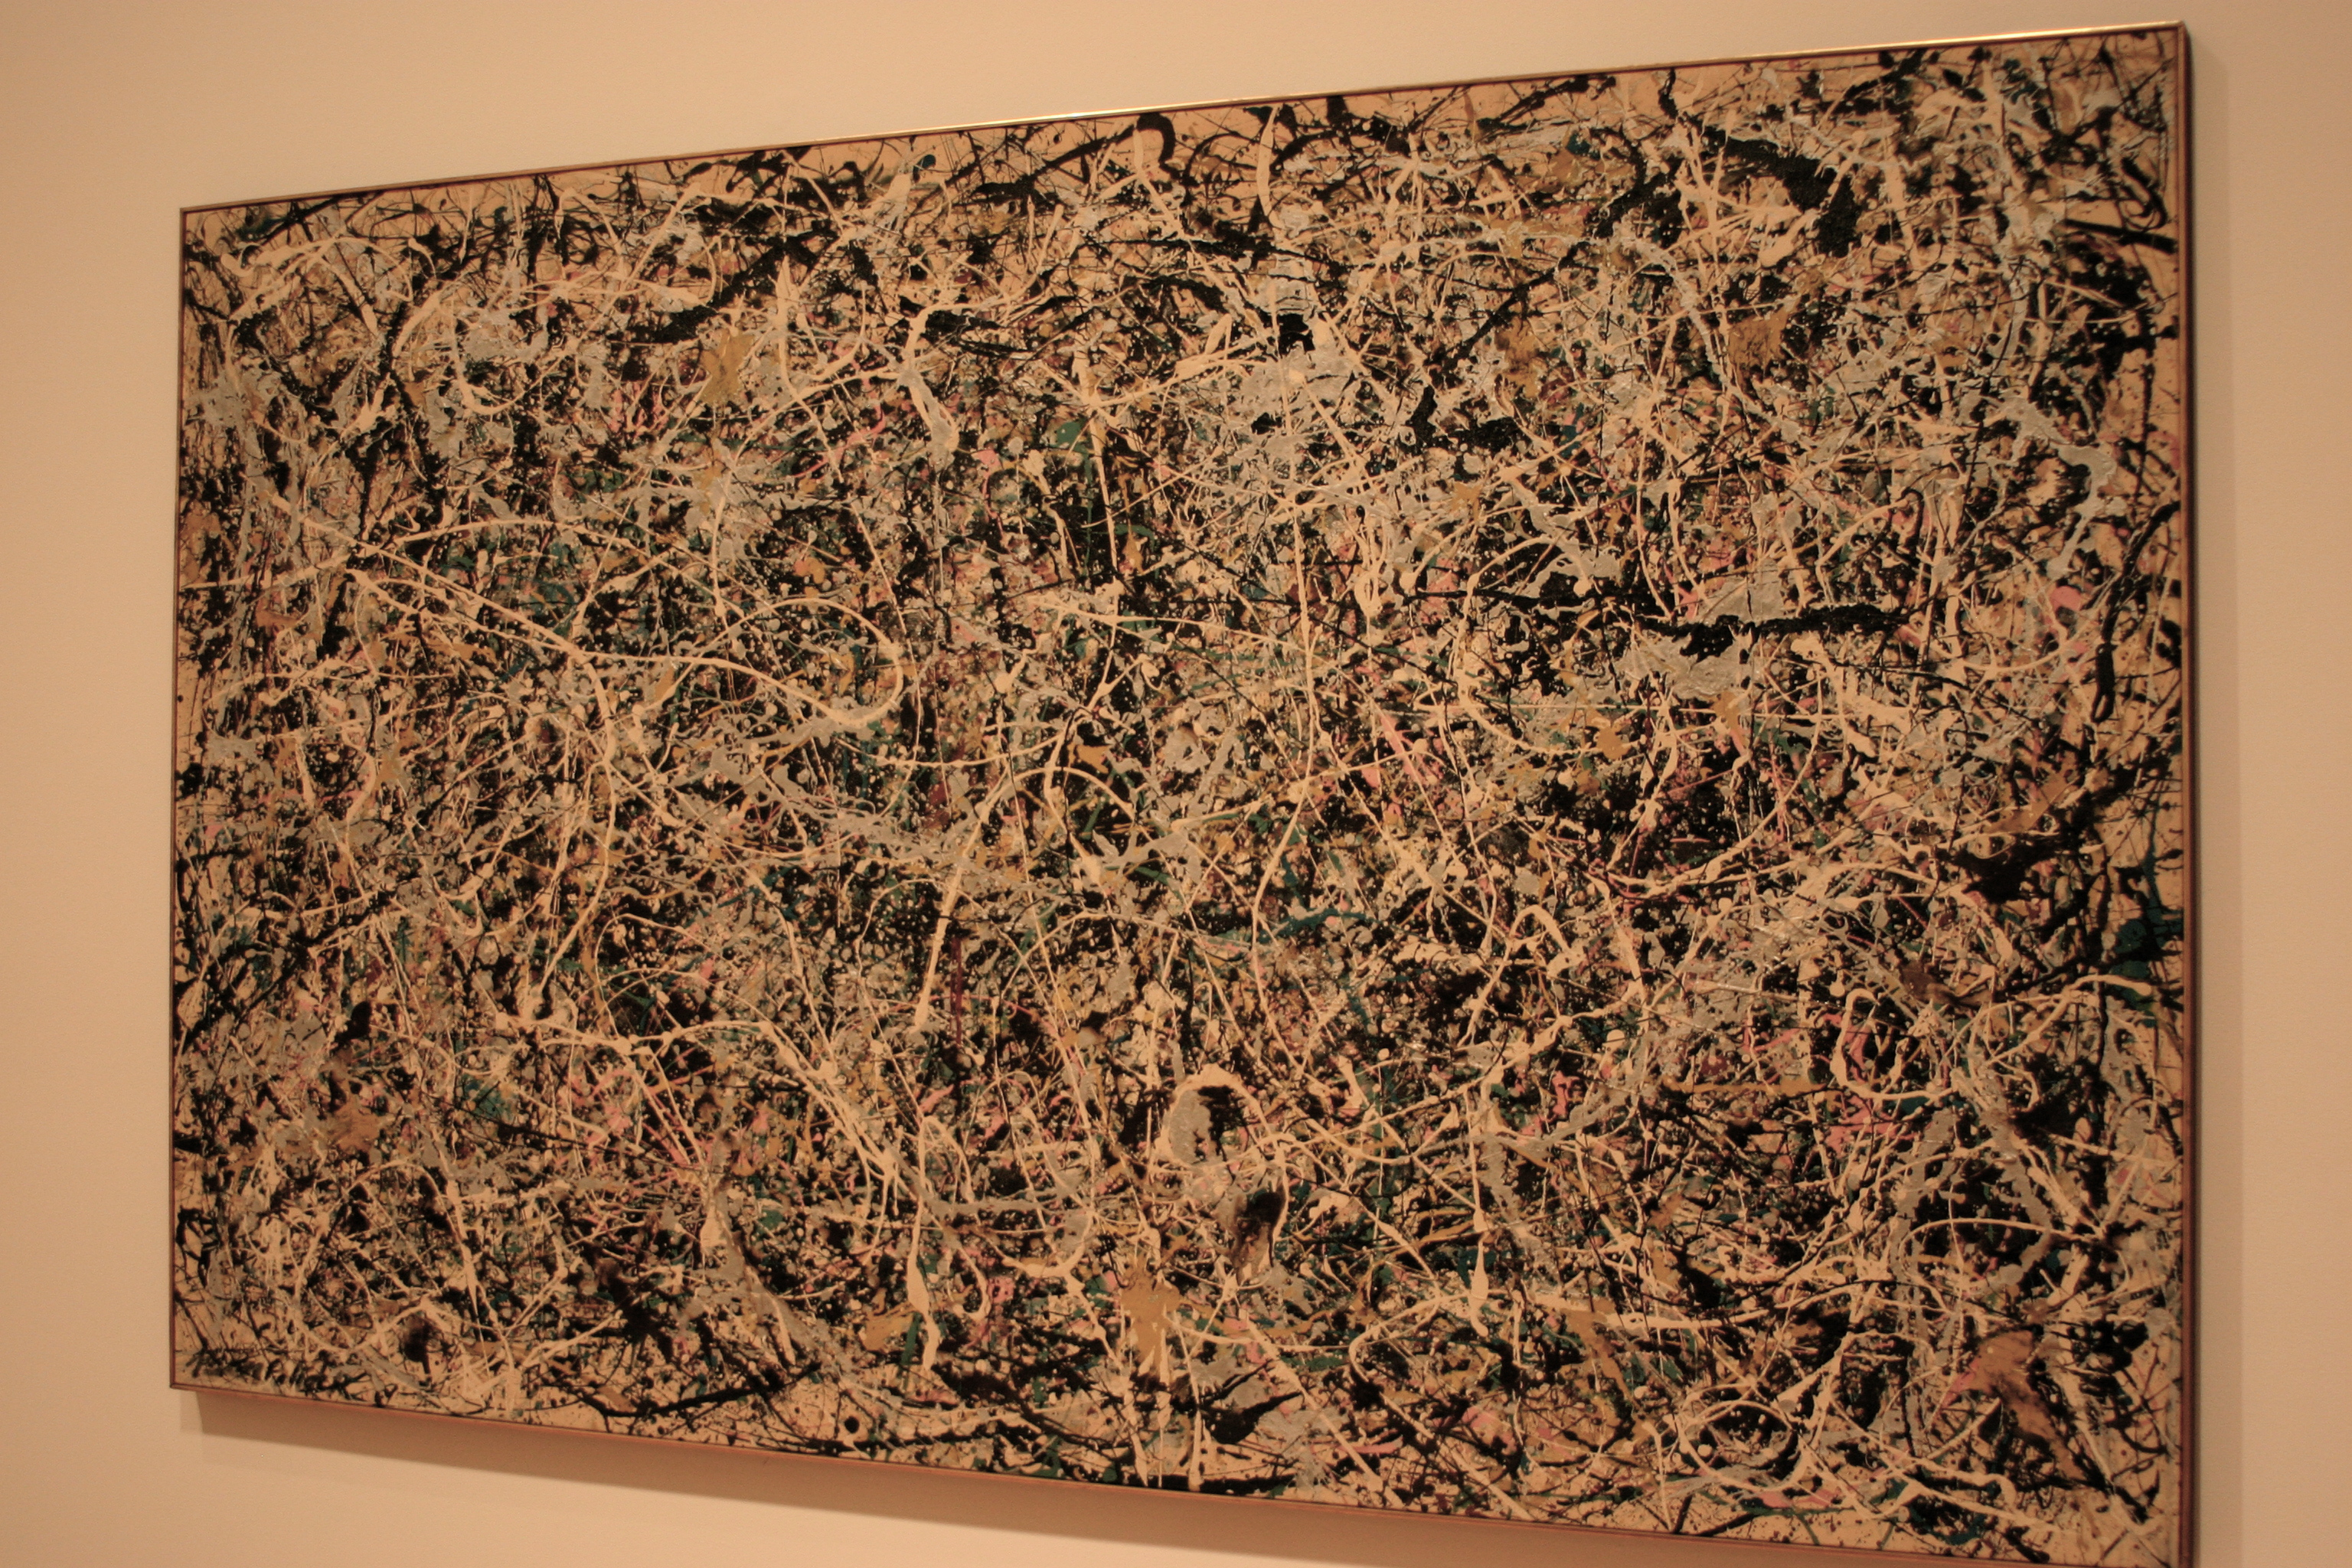 My first Pollock at the Museum of Contemporary Art (MoCA)